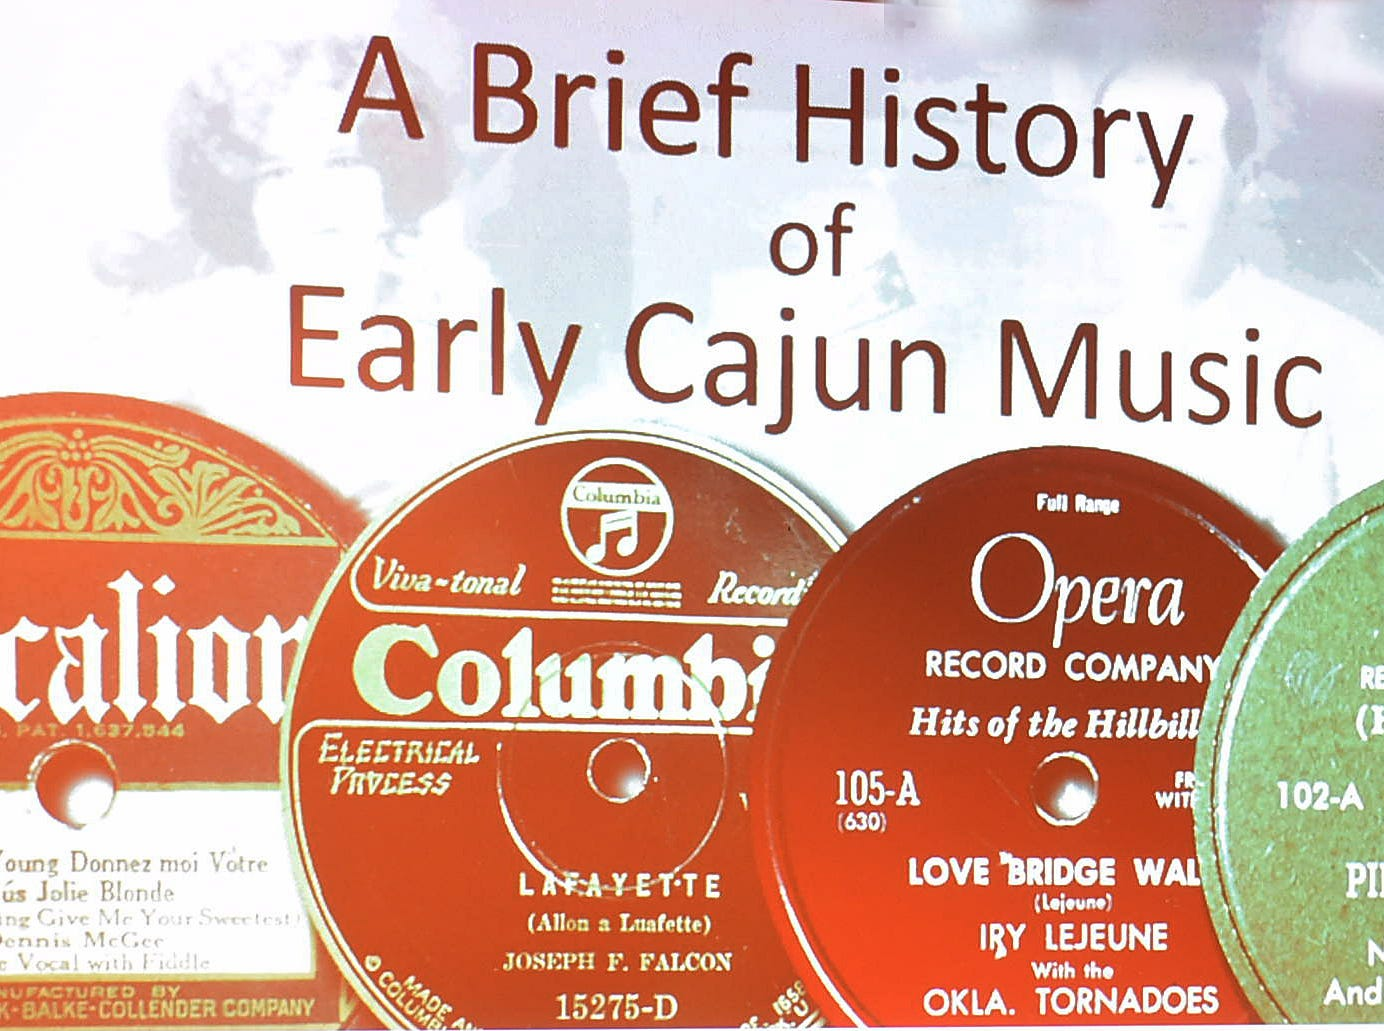 Imperial St. Landry Genealogical Society monthly meeting held Saturday with Wade Falcon presenting a talk on the early Cajun music recordings in St. Landry Parish.